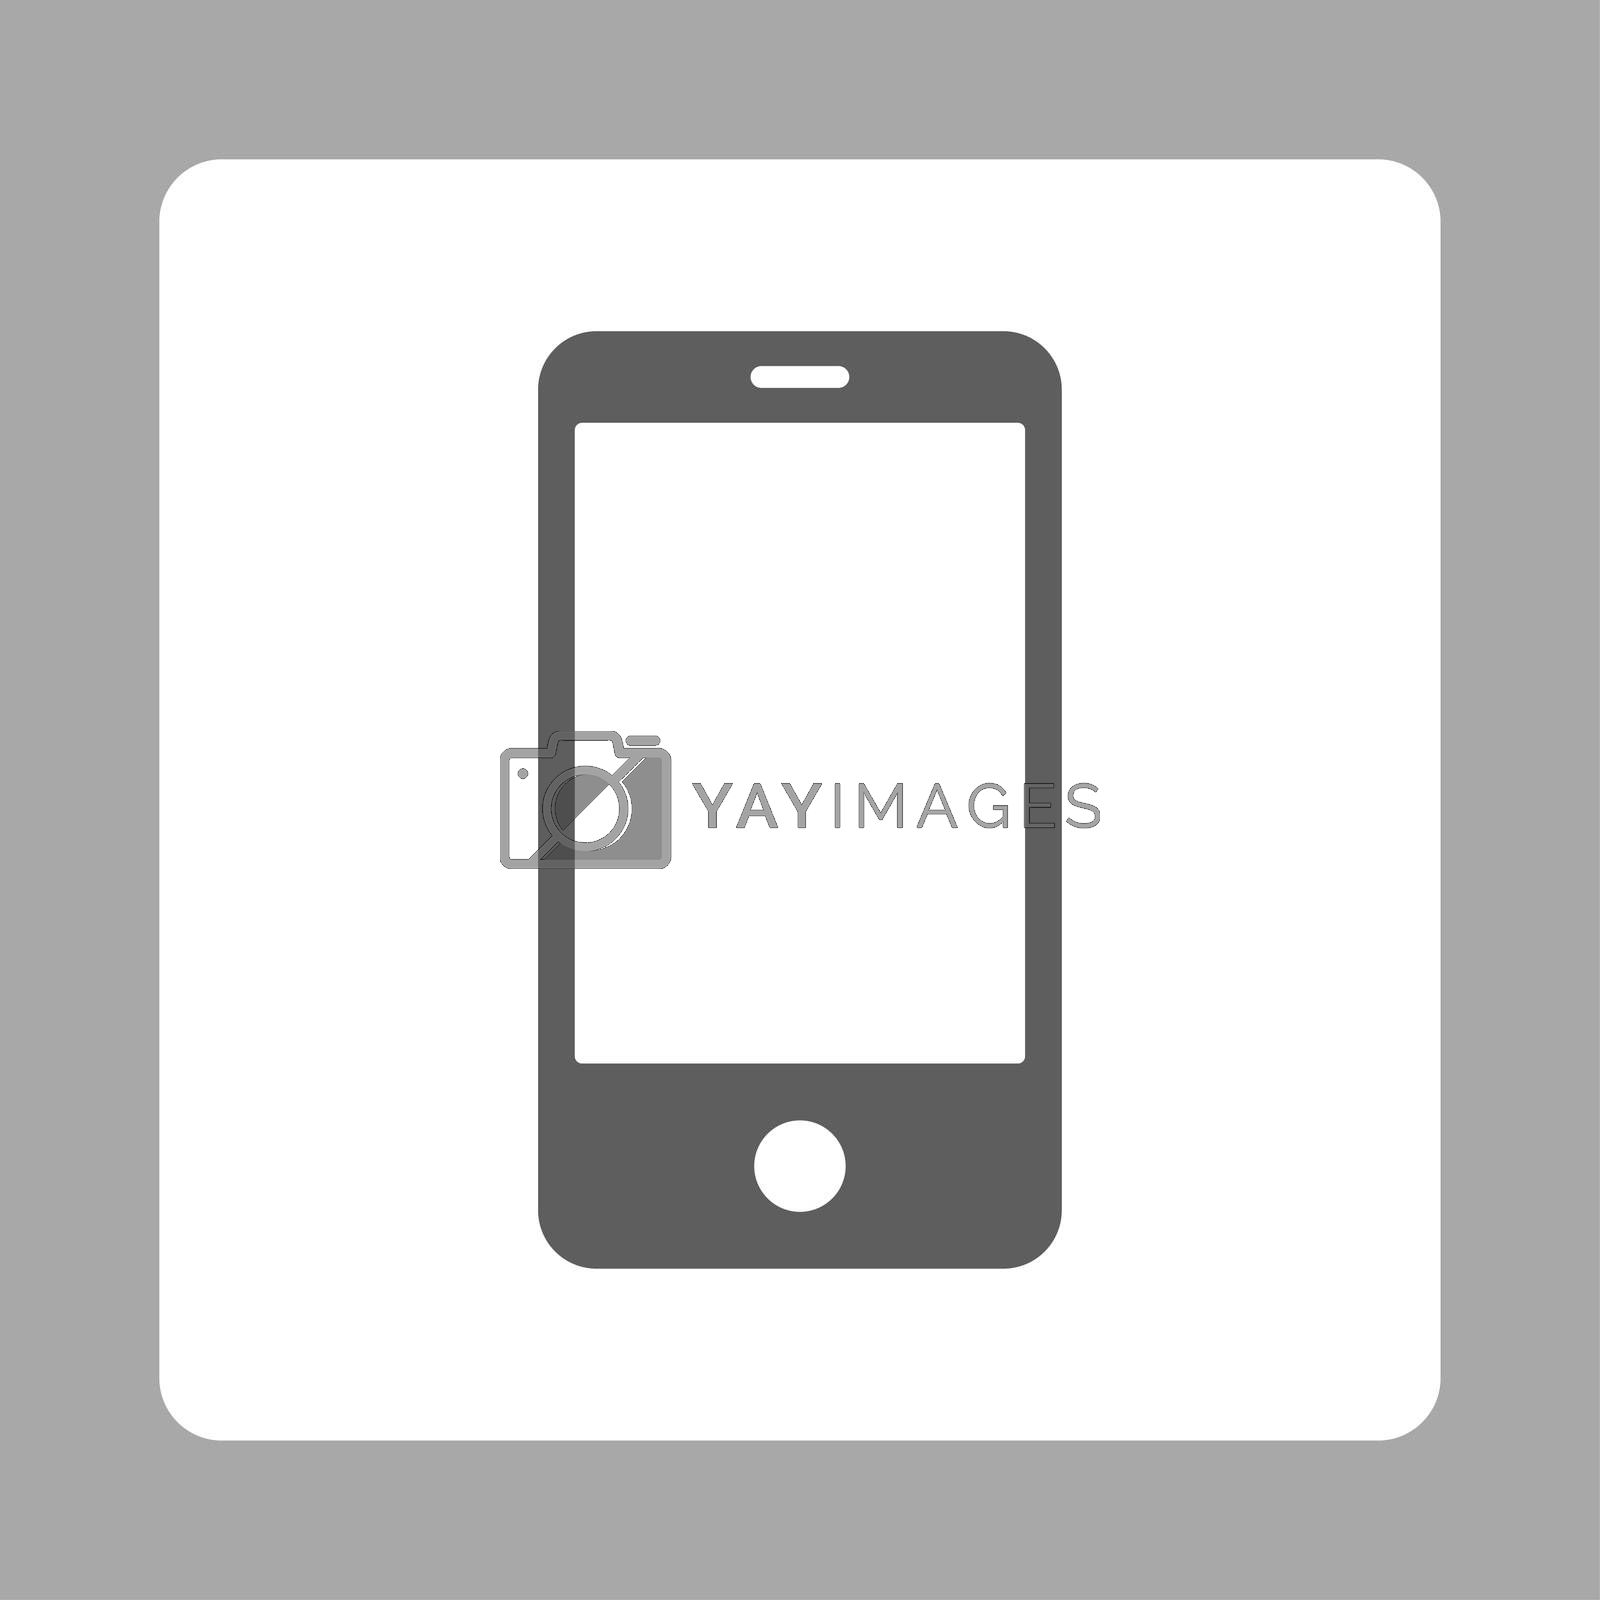 Royalty free image of Smartphone flat dark gray and white colors rounded button by ahasoft